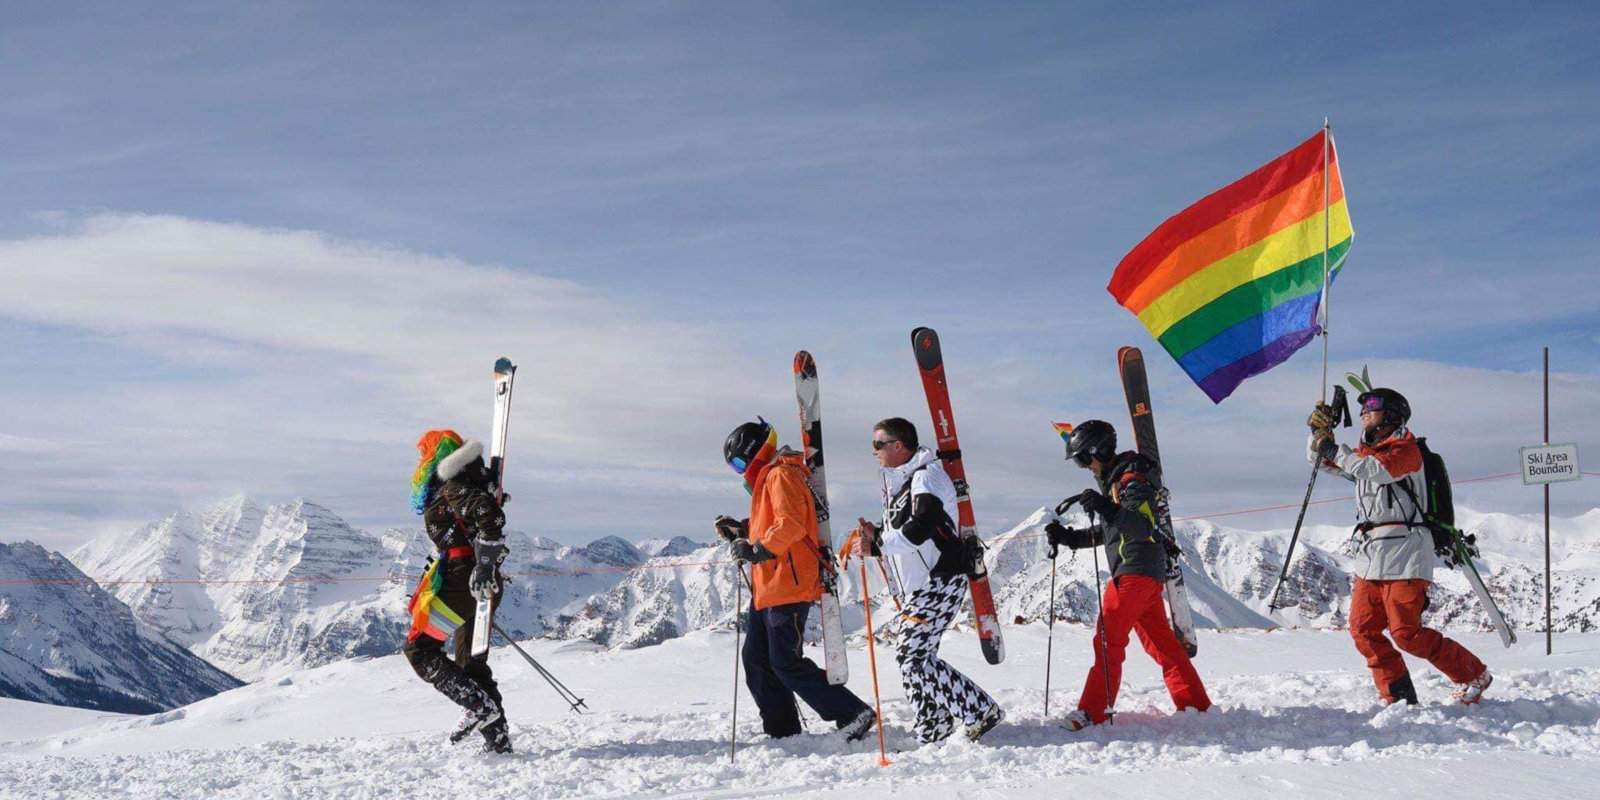 Aspen's Gay Ski Week is packed full of over the top fun for gay fans of snow, parties, comedy, ice skating and costumes!